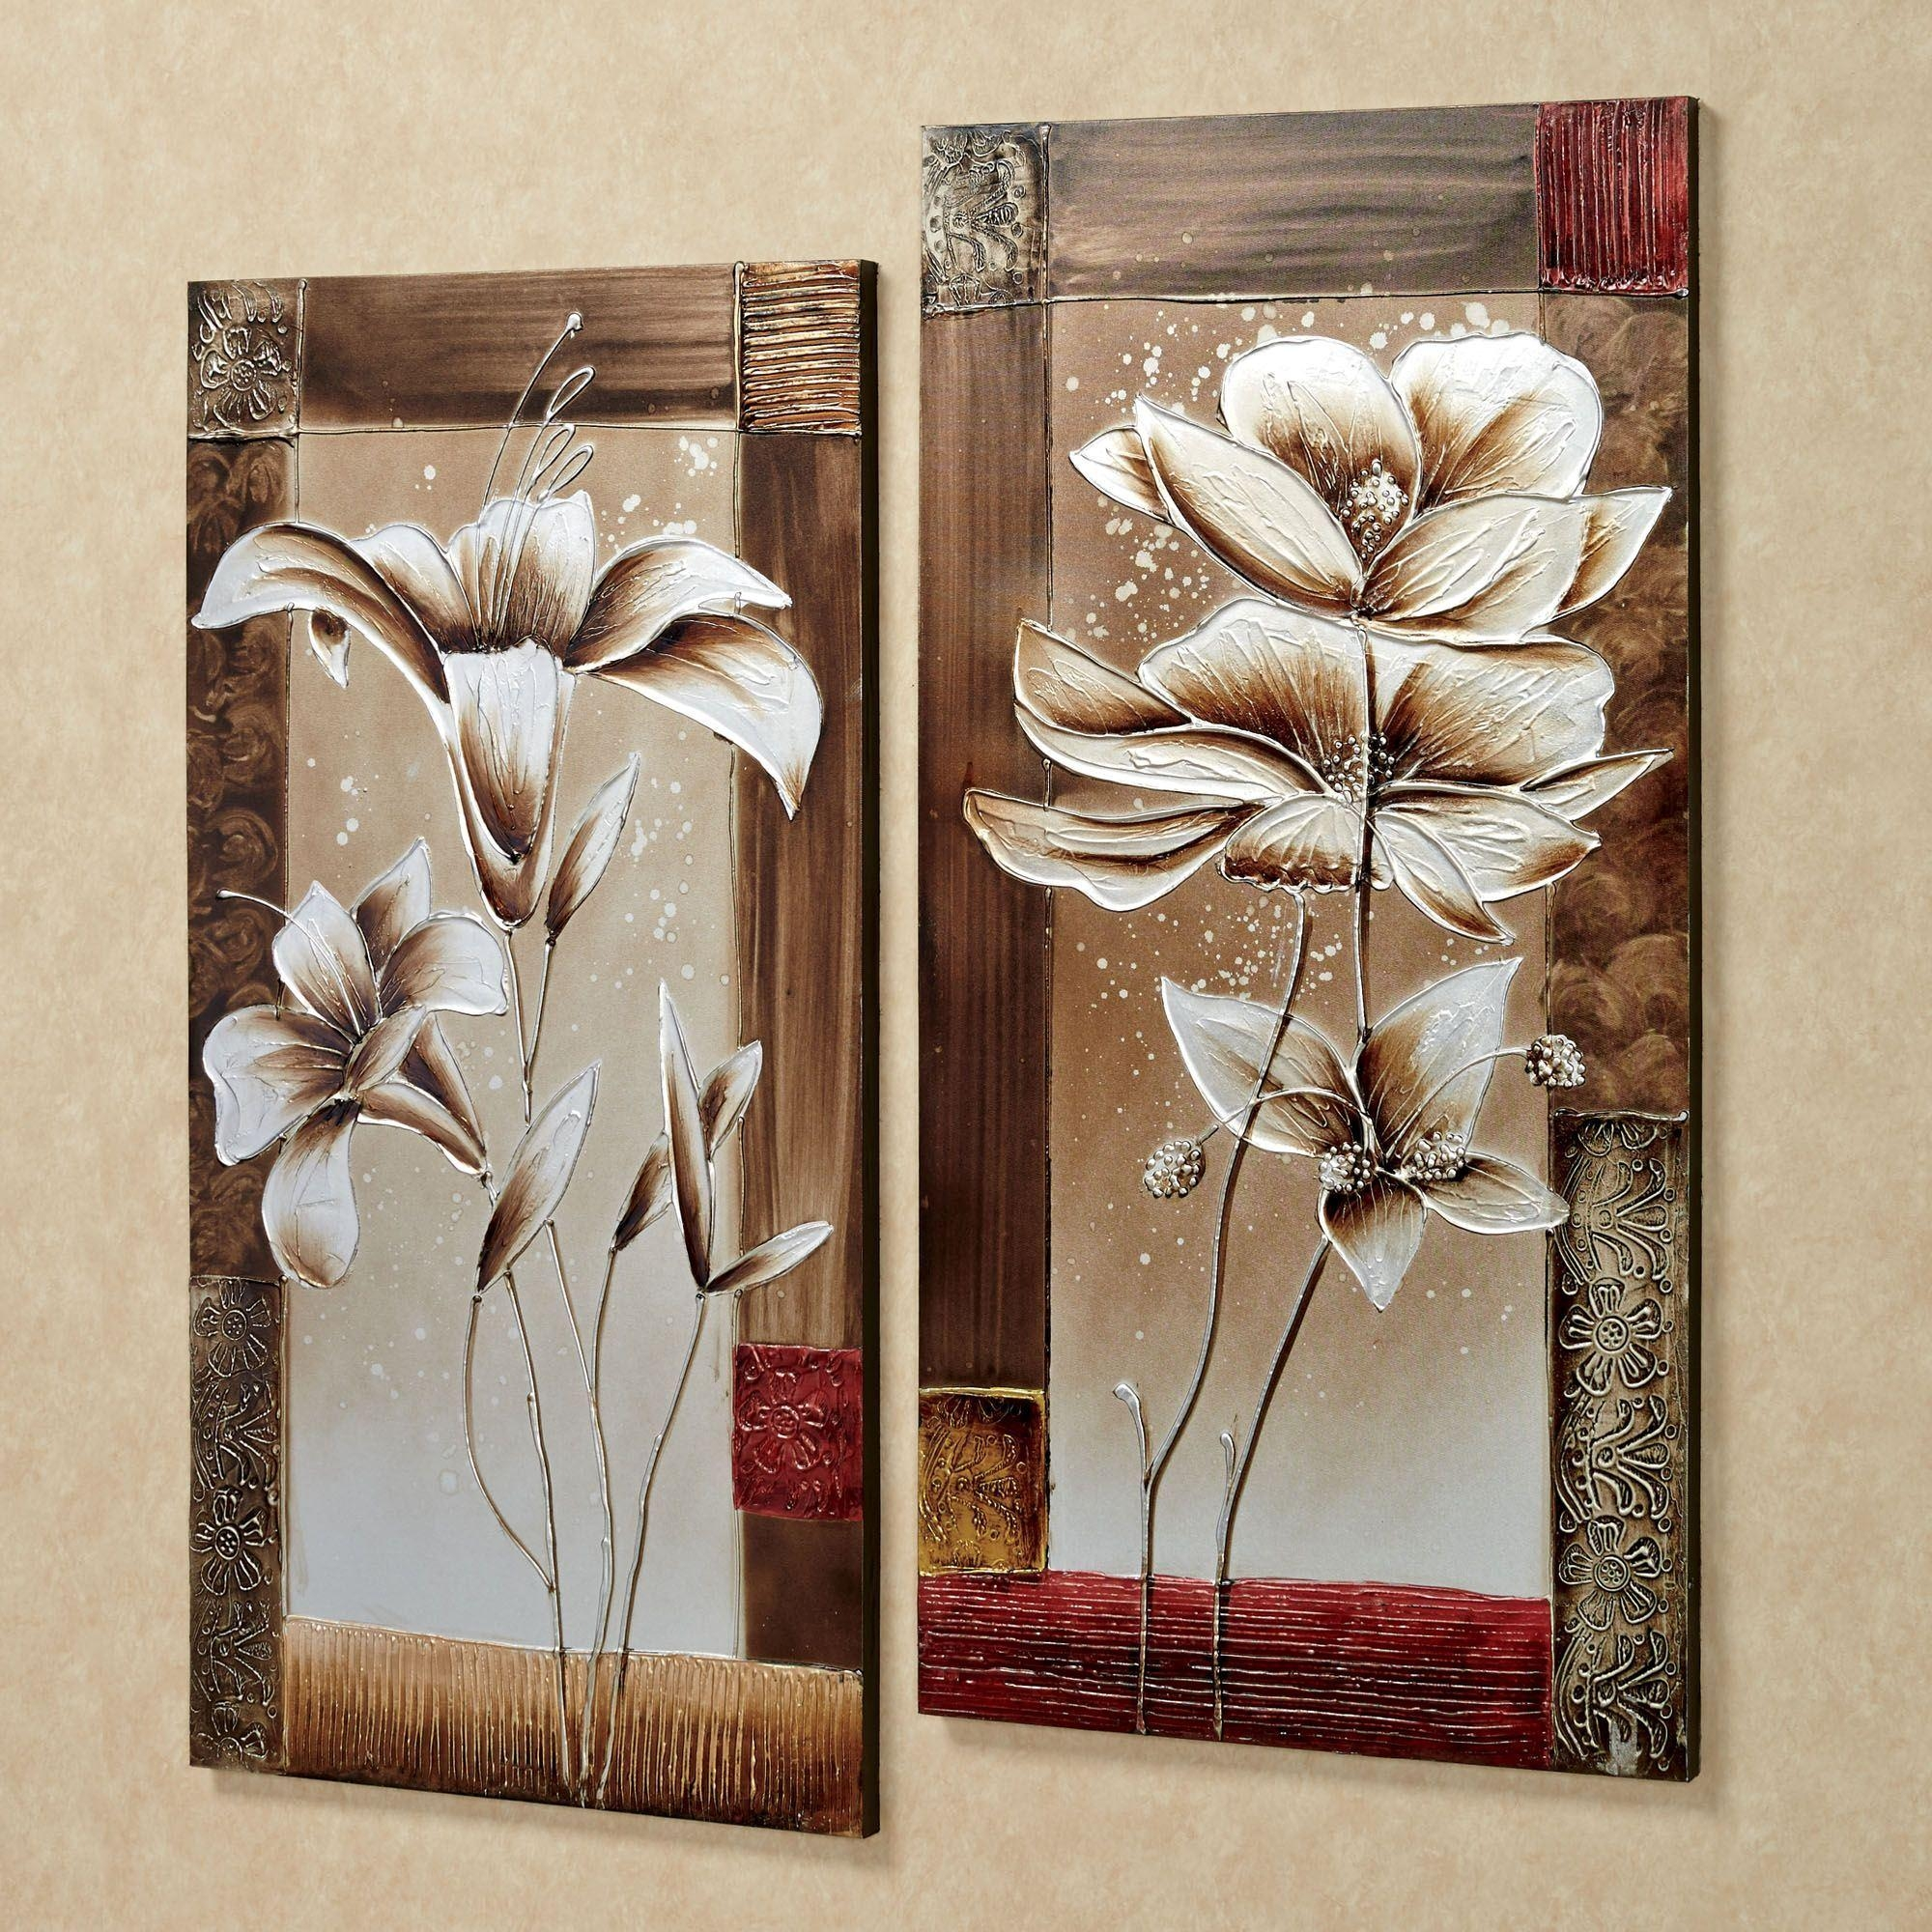 Splendid Outdoor Metal Wall Art Flowers Flowers Https With Regard To Silver Metal Wall Art Flowers (View 14 of 20)